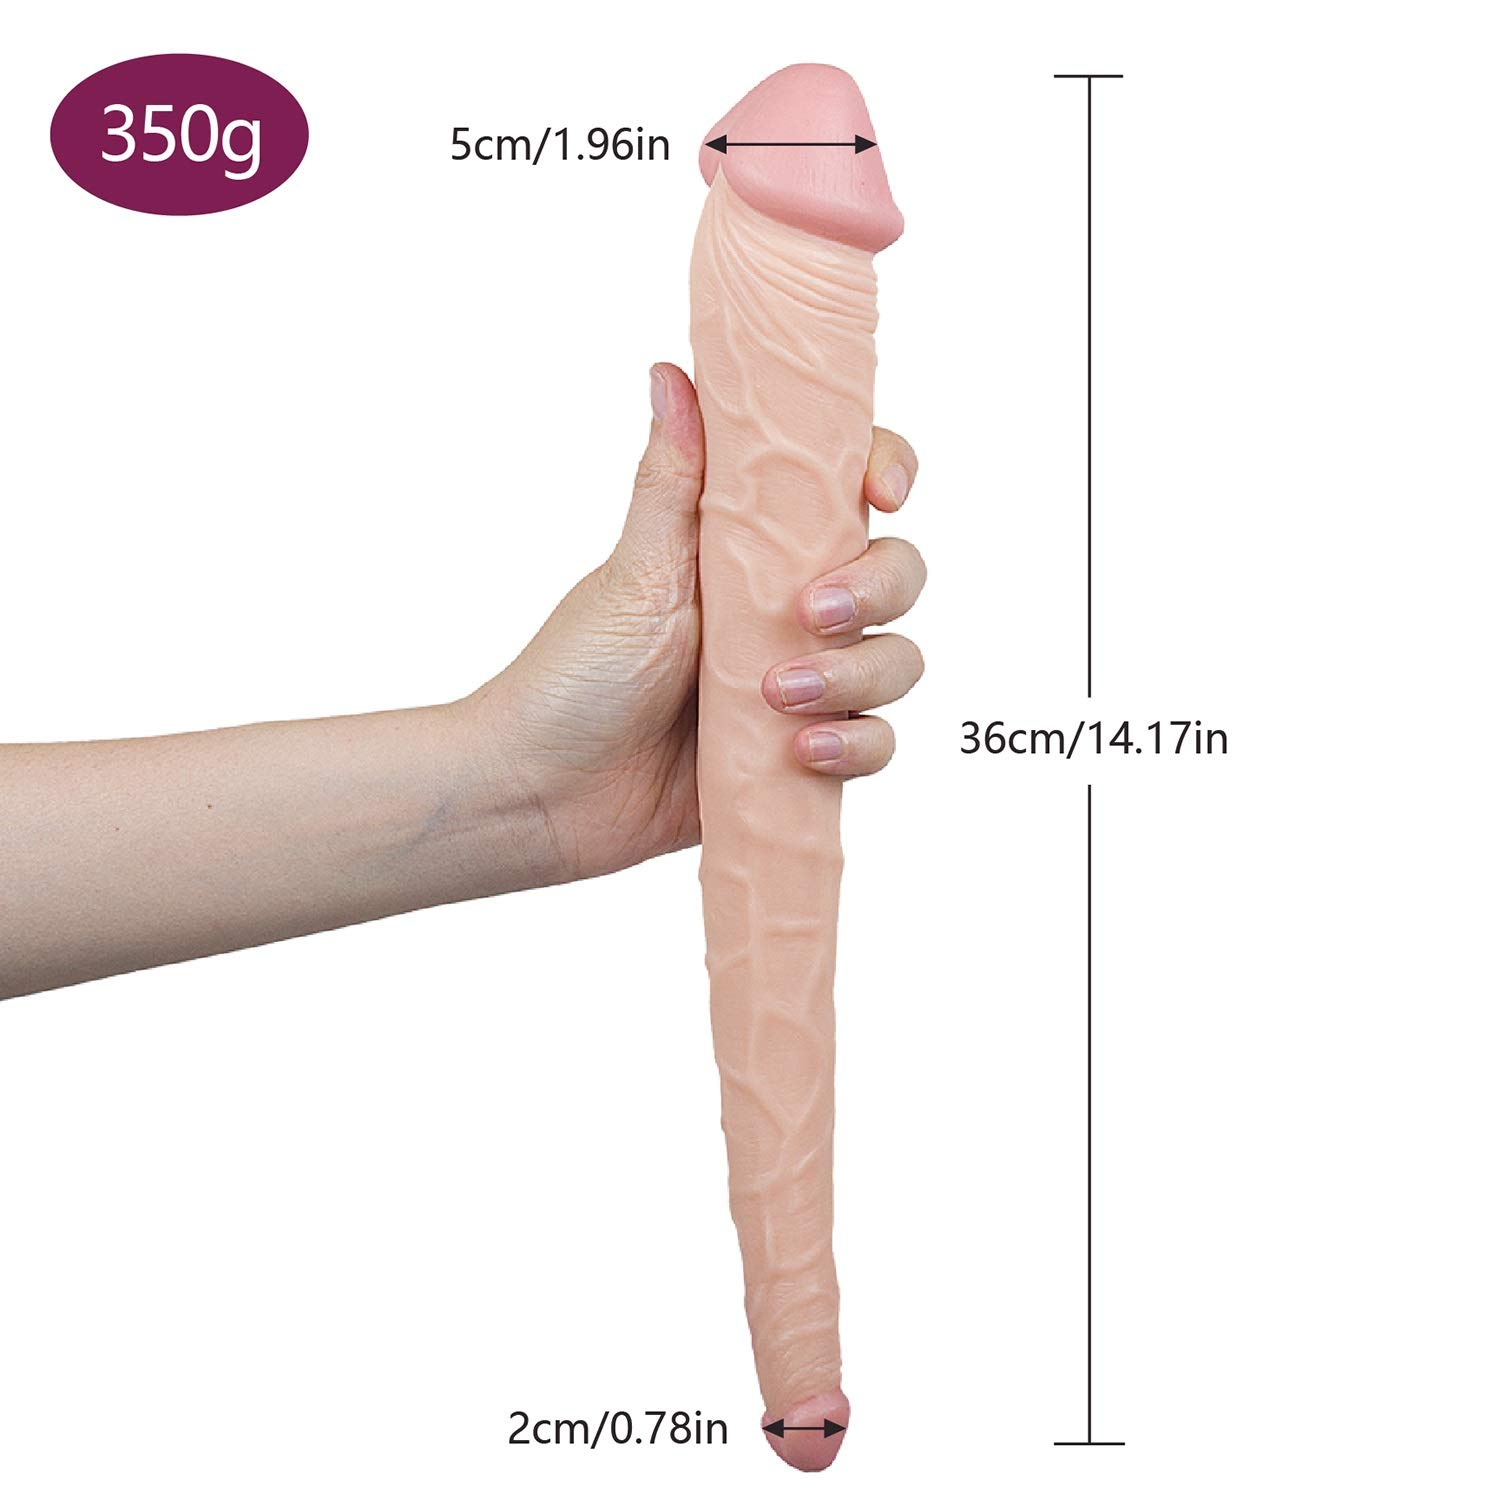 TTFAYQ Realistic Double Dong,Double Ended Dǐldo Adult Toy for Lesbǐan TTFAYQ